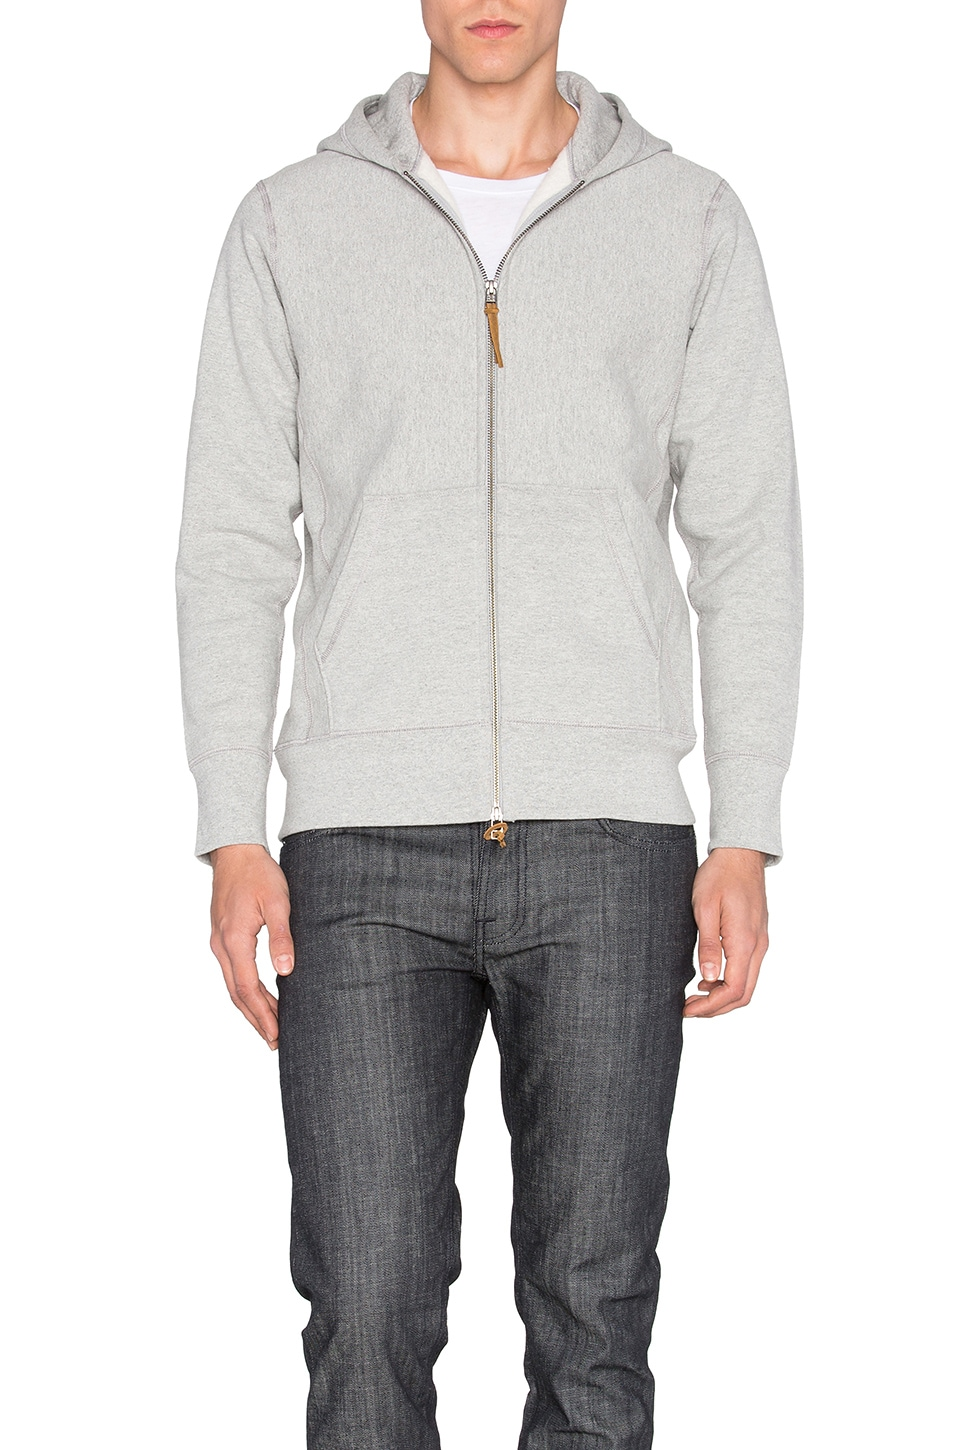 3sixteen Heavyweight Hoody in Grey